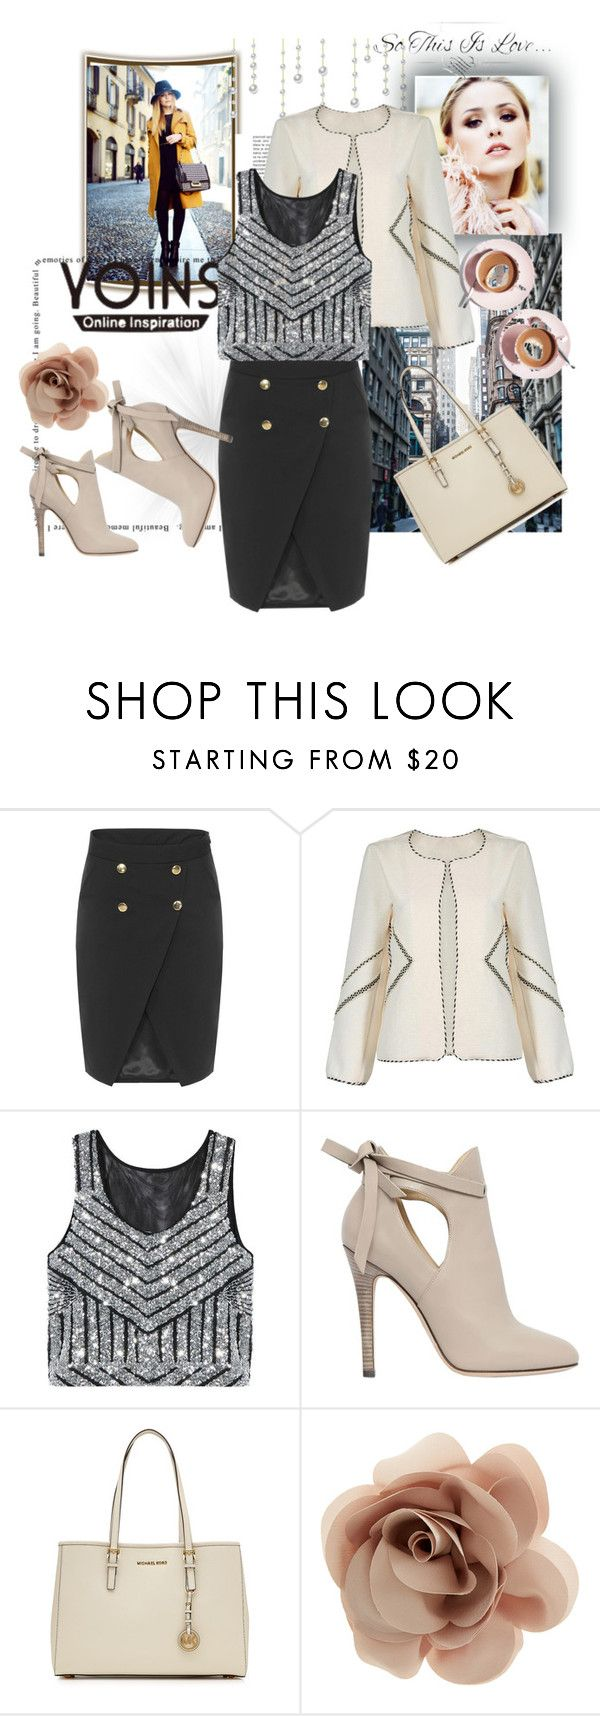 """YOINS 16"" by nedim-848 ❤ liked on Polyvore featuring Jimmy Choo, MICHAEL Michael Kors, Accessorize, Martha Stewart, women's clothing, women, female, woman, misses and juniors"